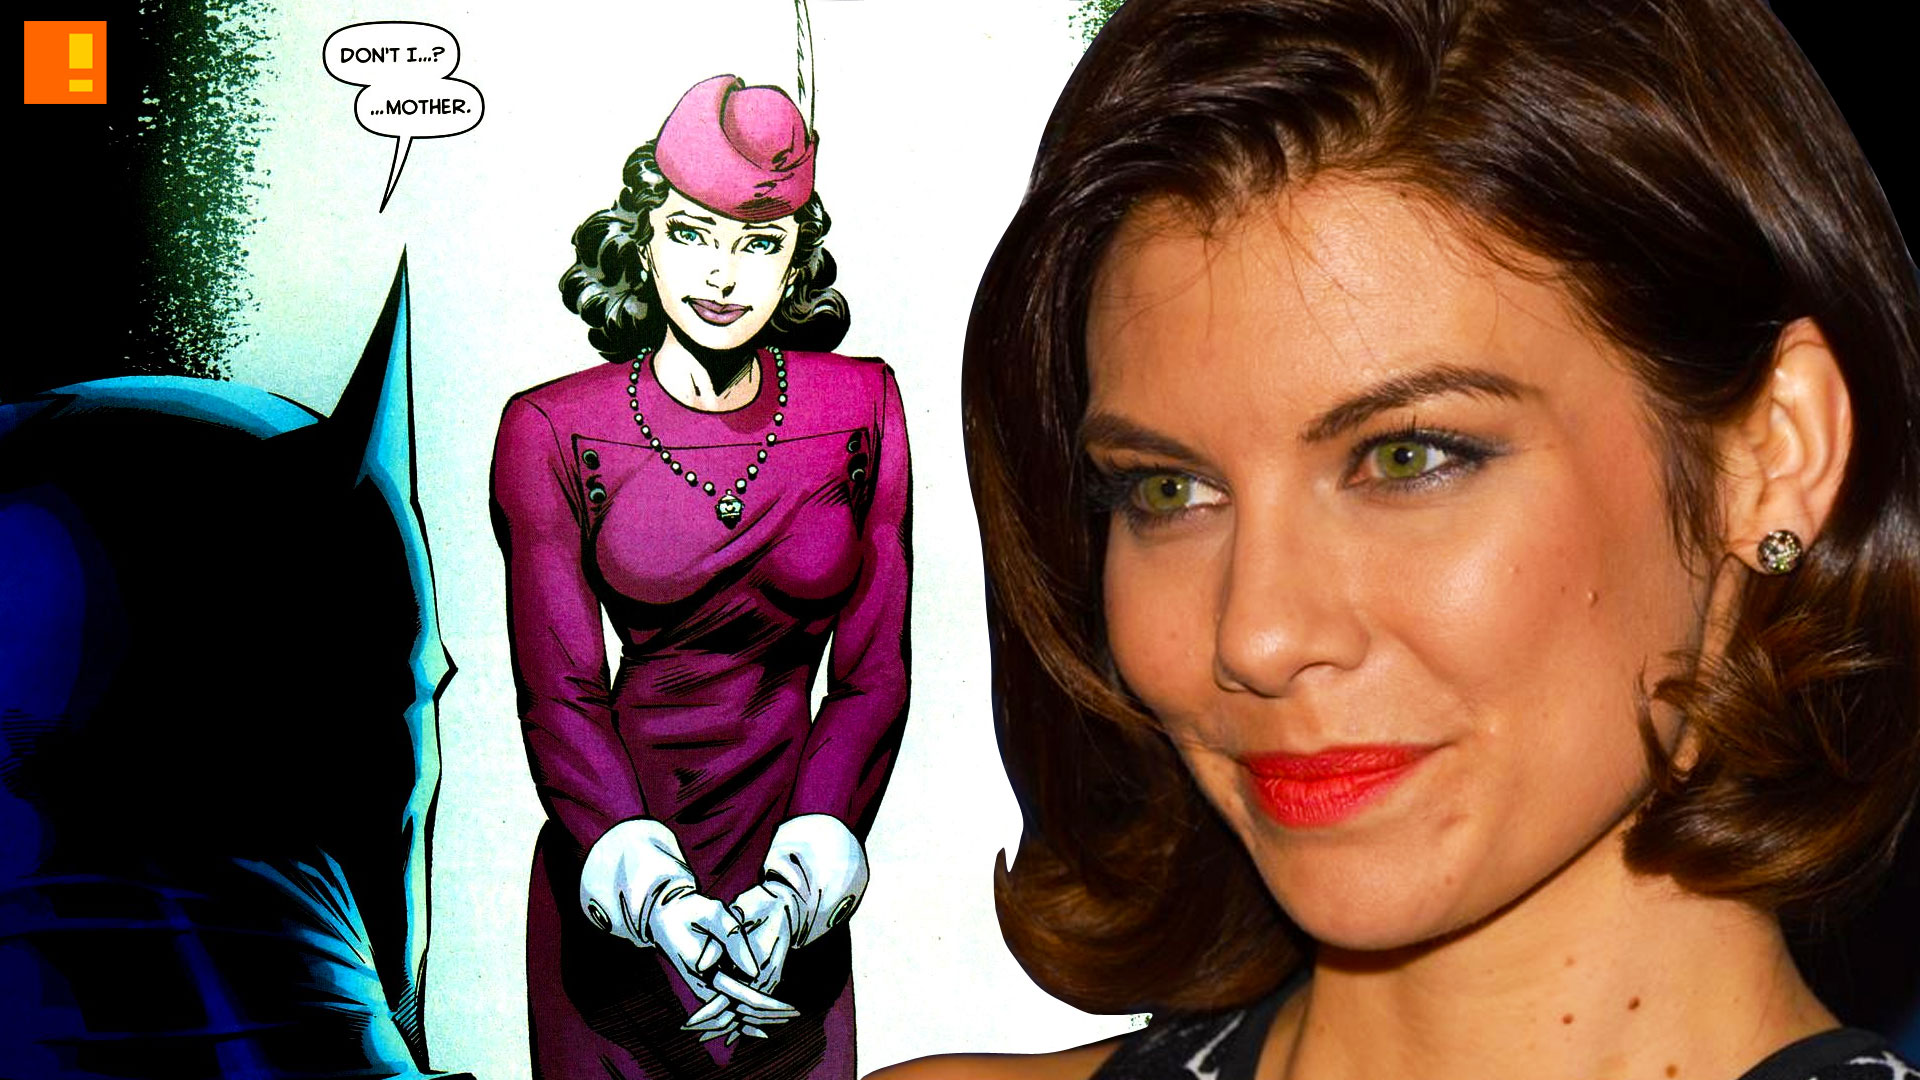 lauren cohan cast as martha wayne in batman v superma dawn of justice. the action pixel. dc comics. warner bros. pictures. @theactionpixellauren cohan cast as martha wayne in batman v superma dawn of justice. the action pixel. dc comics. warner bros. pictures. @theactionpixel